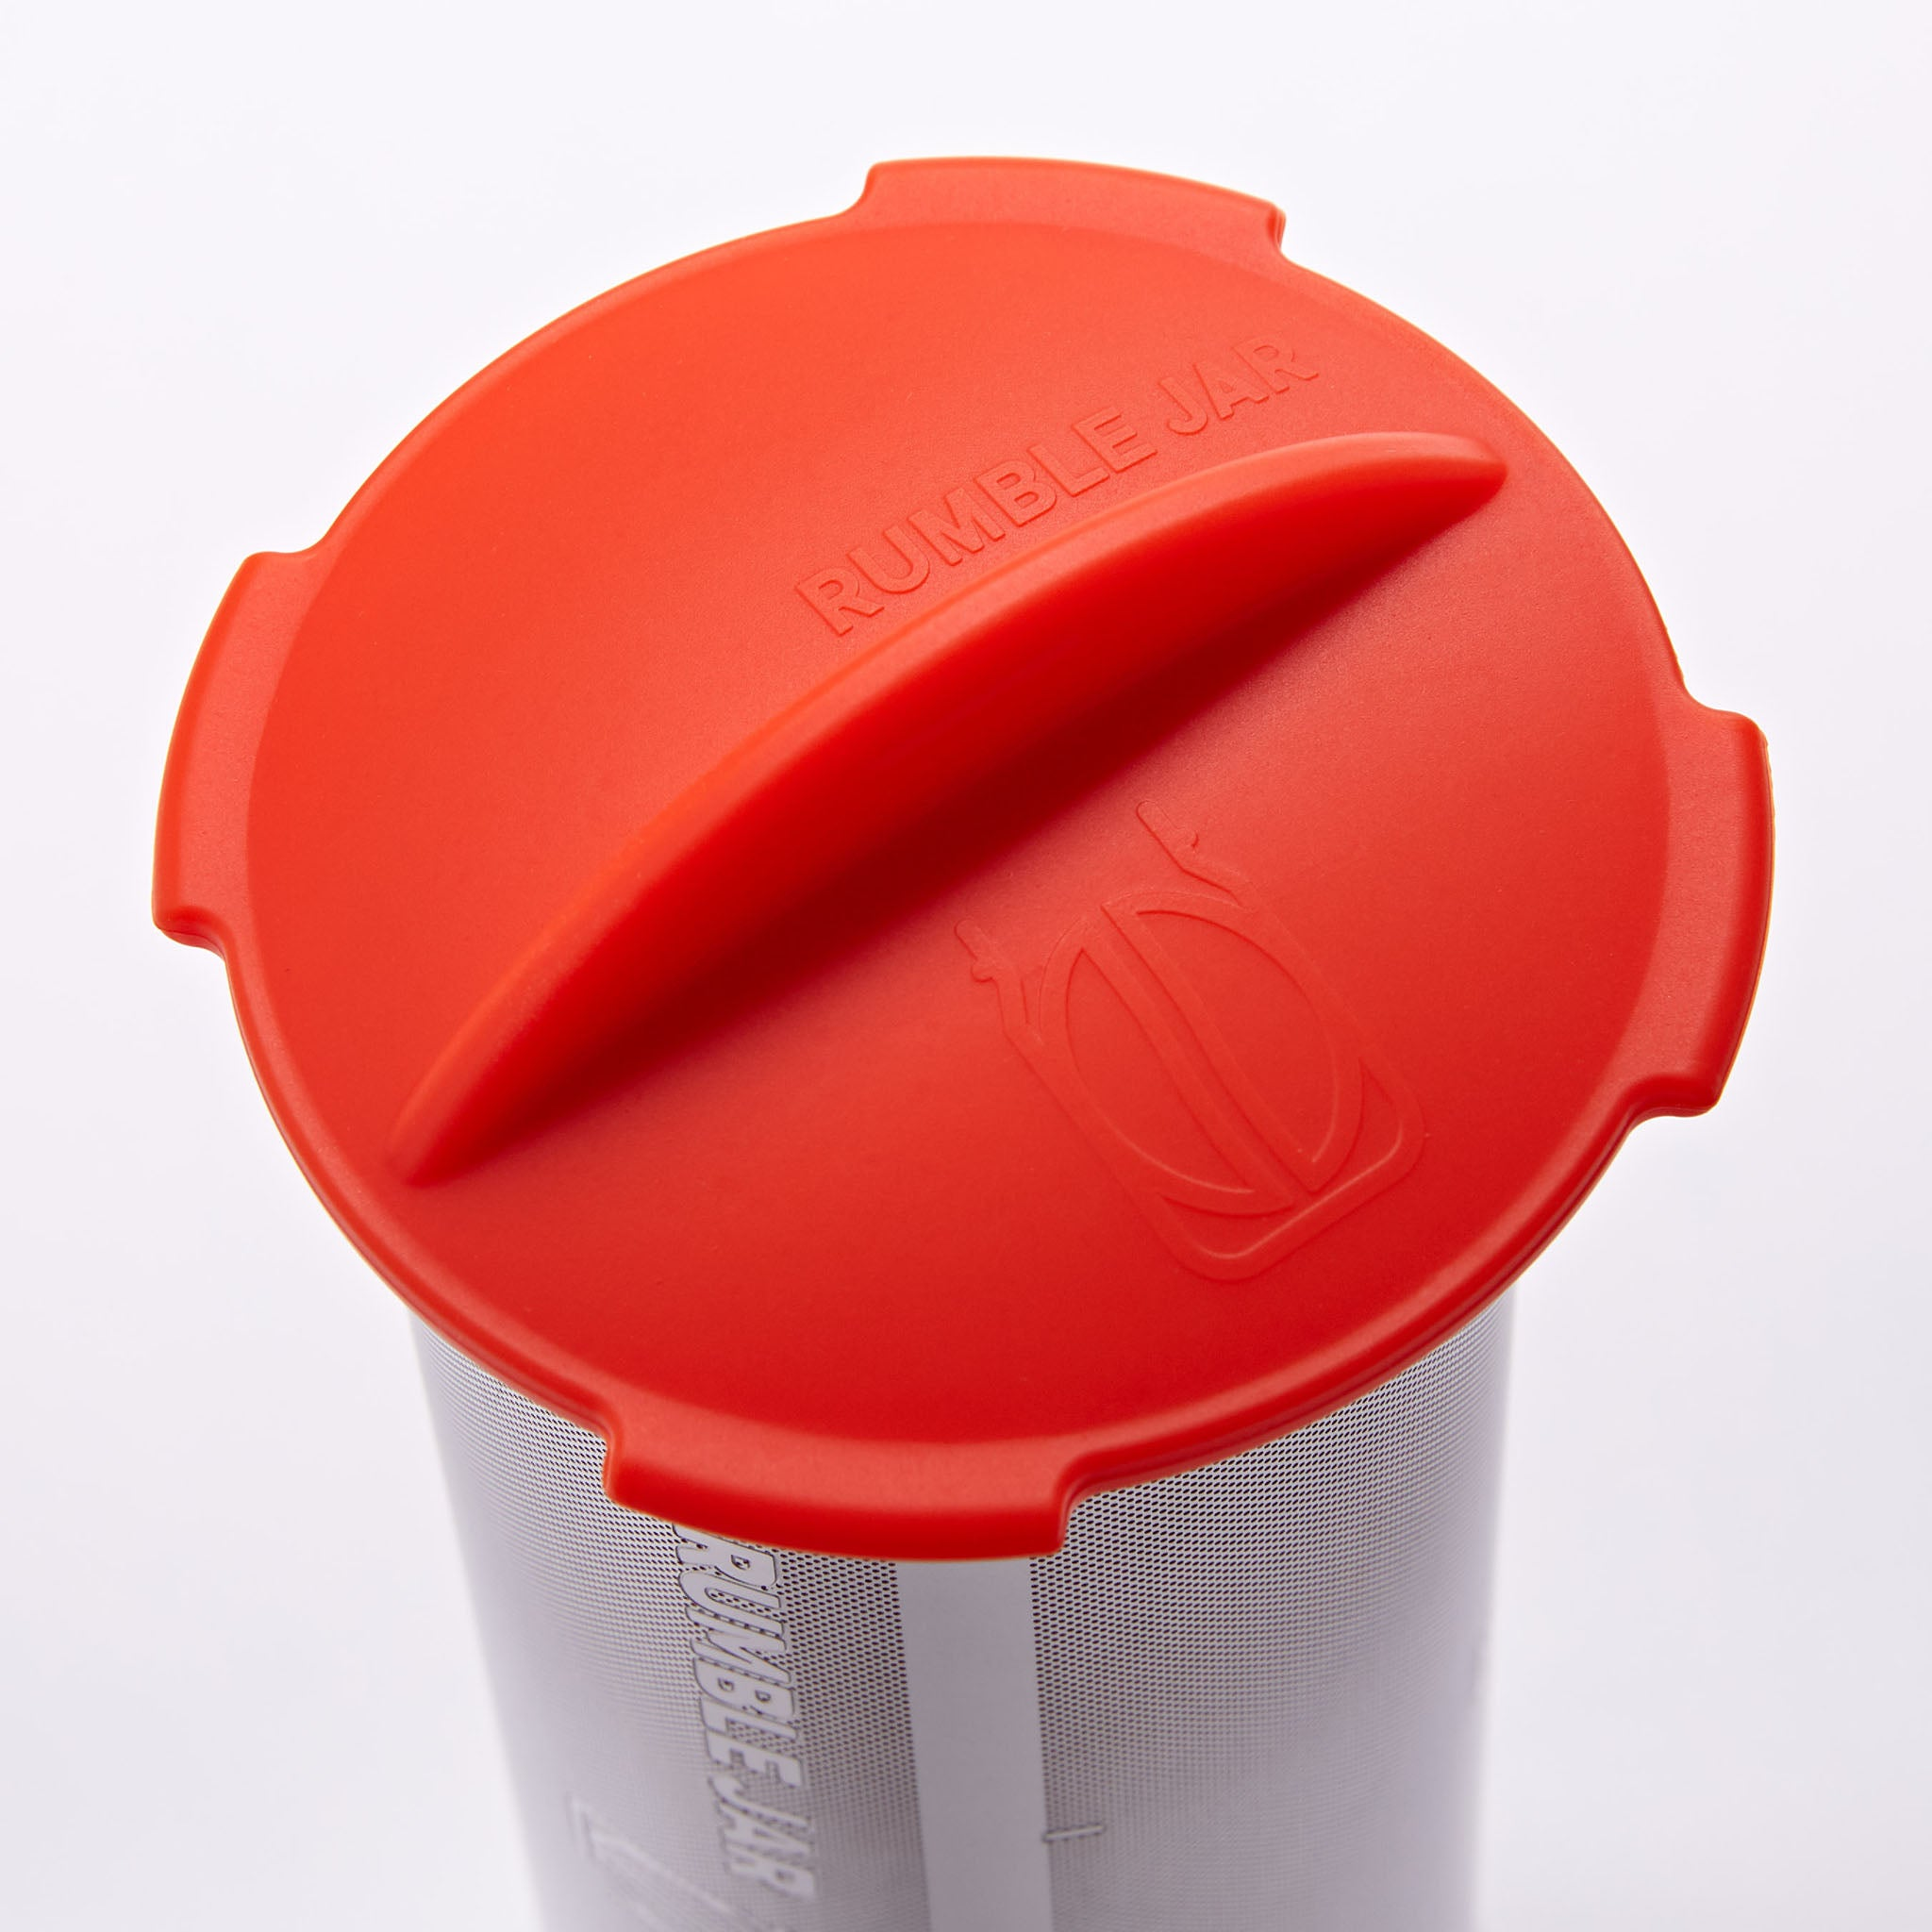 Rumble Jar's silicone cap comes in three different colors